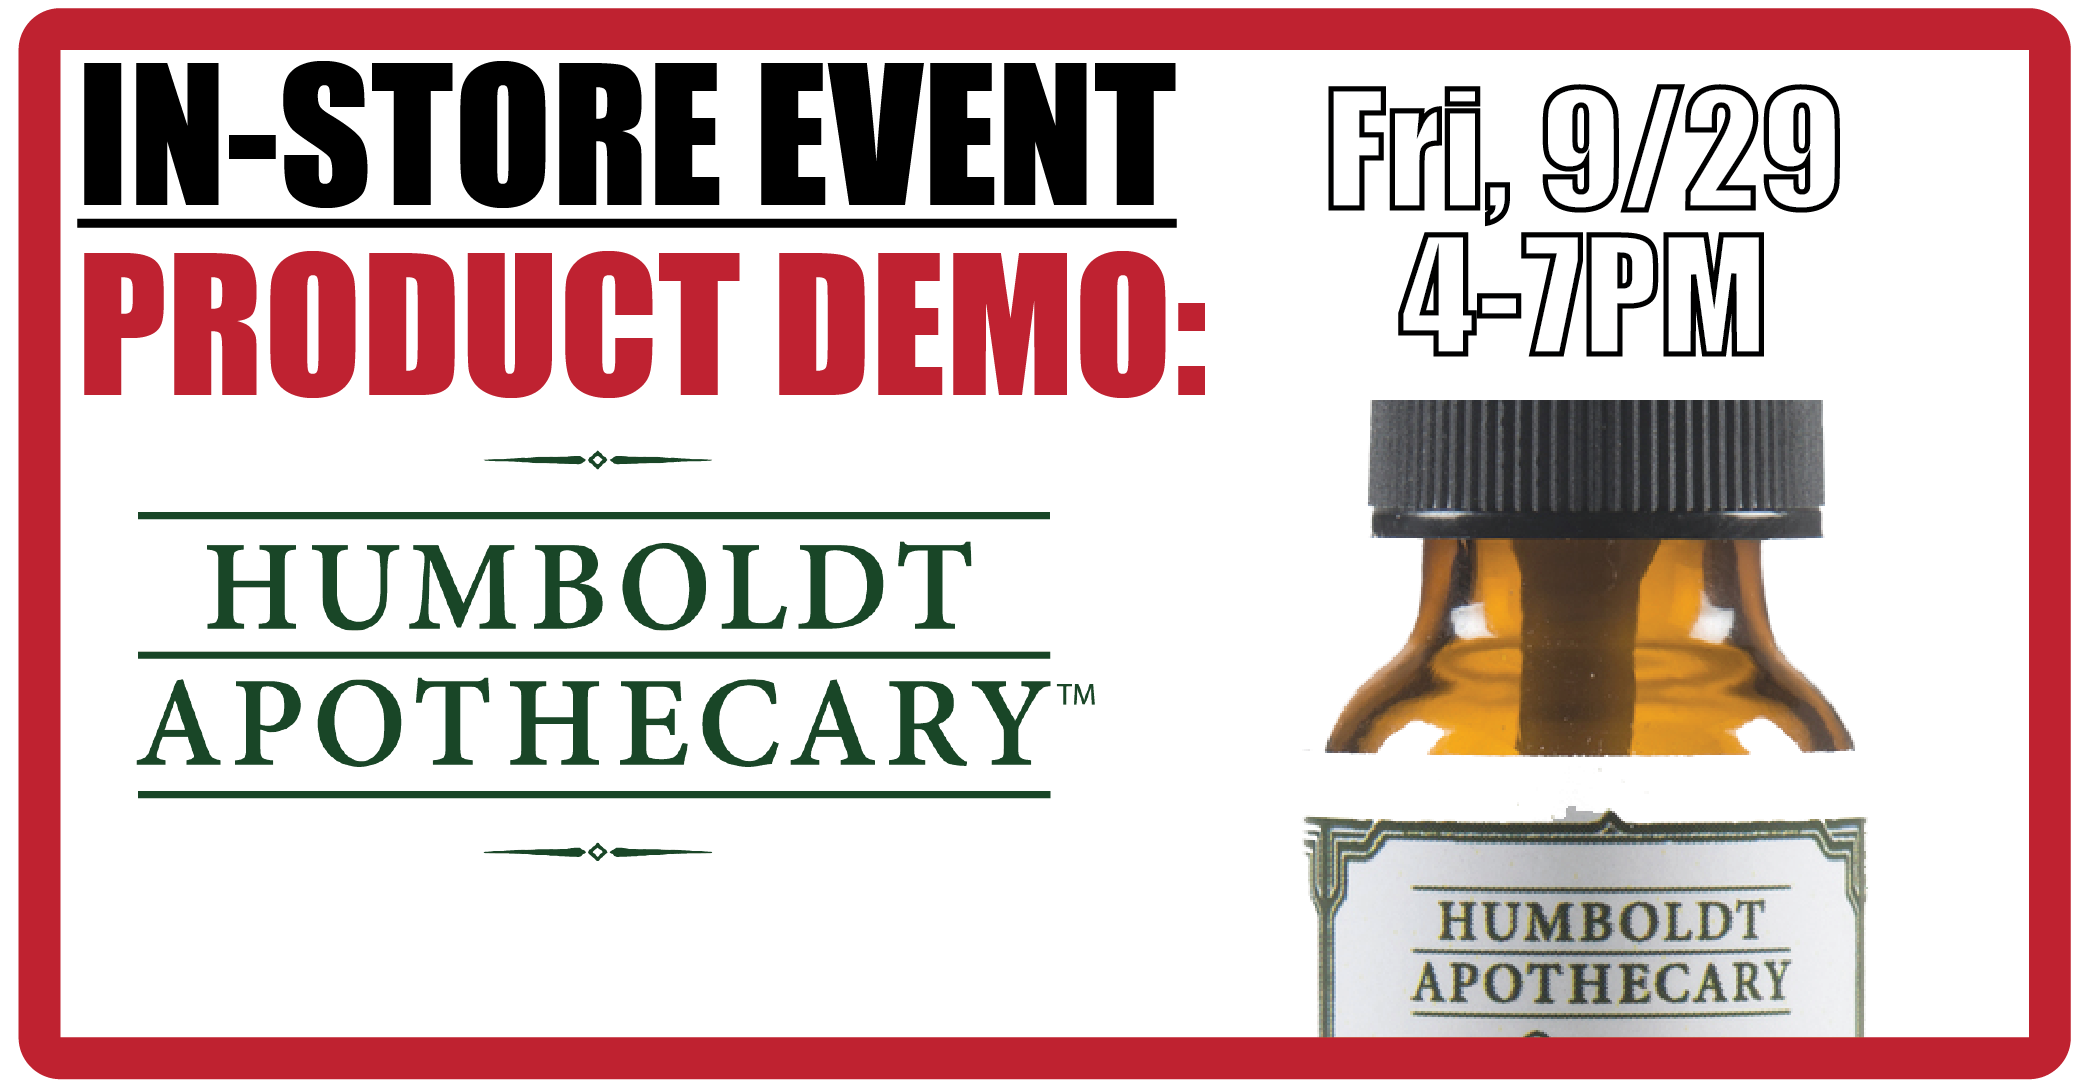 Product Demonstrations Summer 2017_Humboldt Apothecary_v0929 copy-01.png